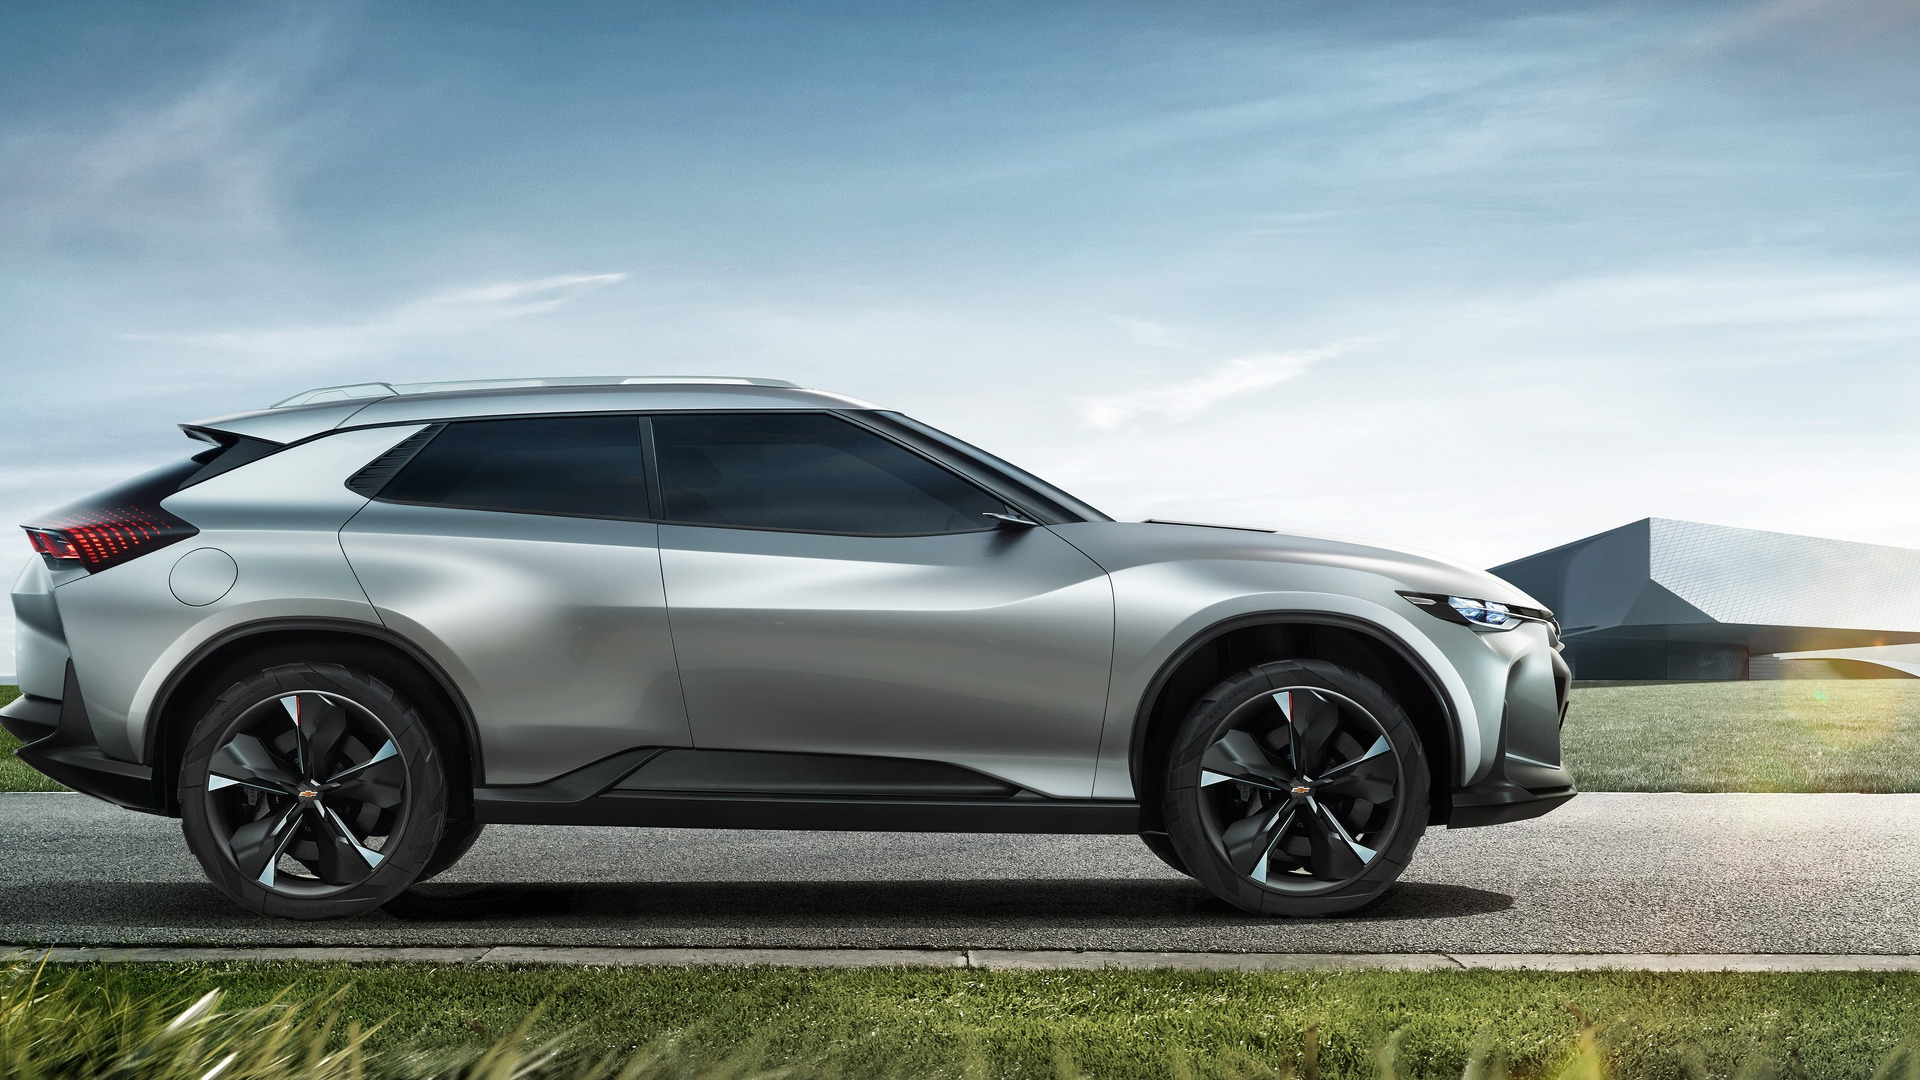 Chevrolet FNR-X Concept: Review >> Chevy Fnr X Might Just Be The Coolest Concept In Shanghai